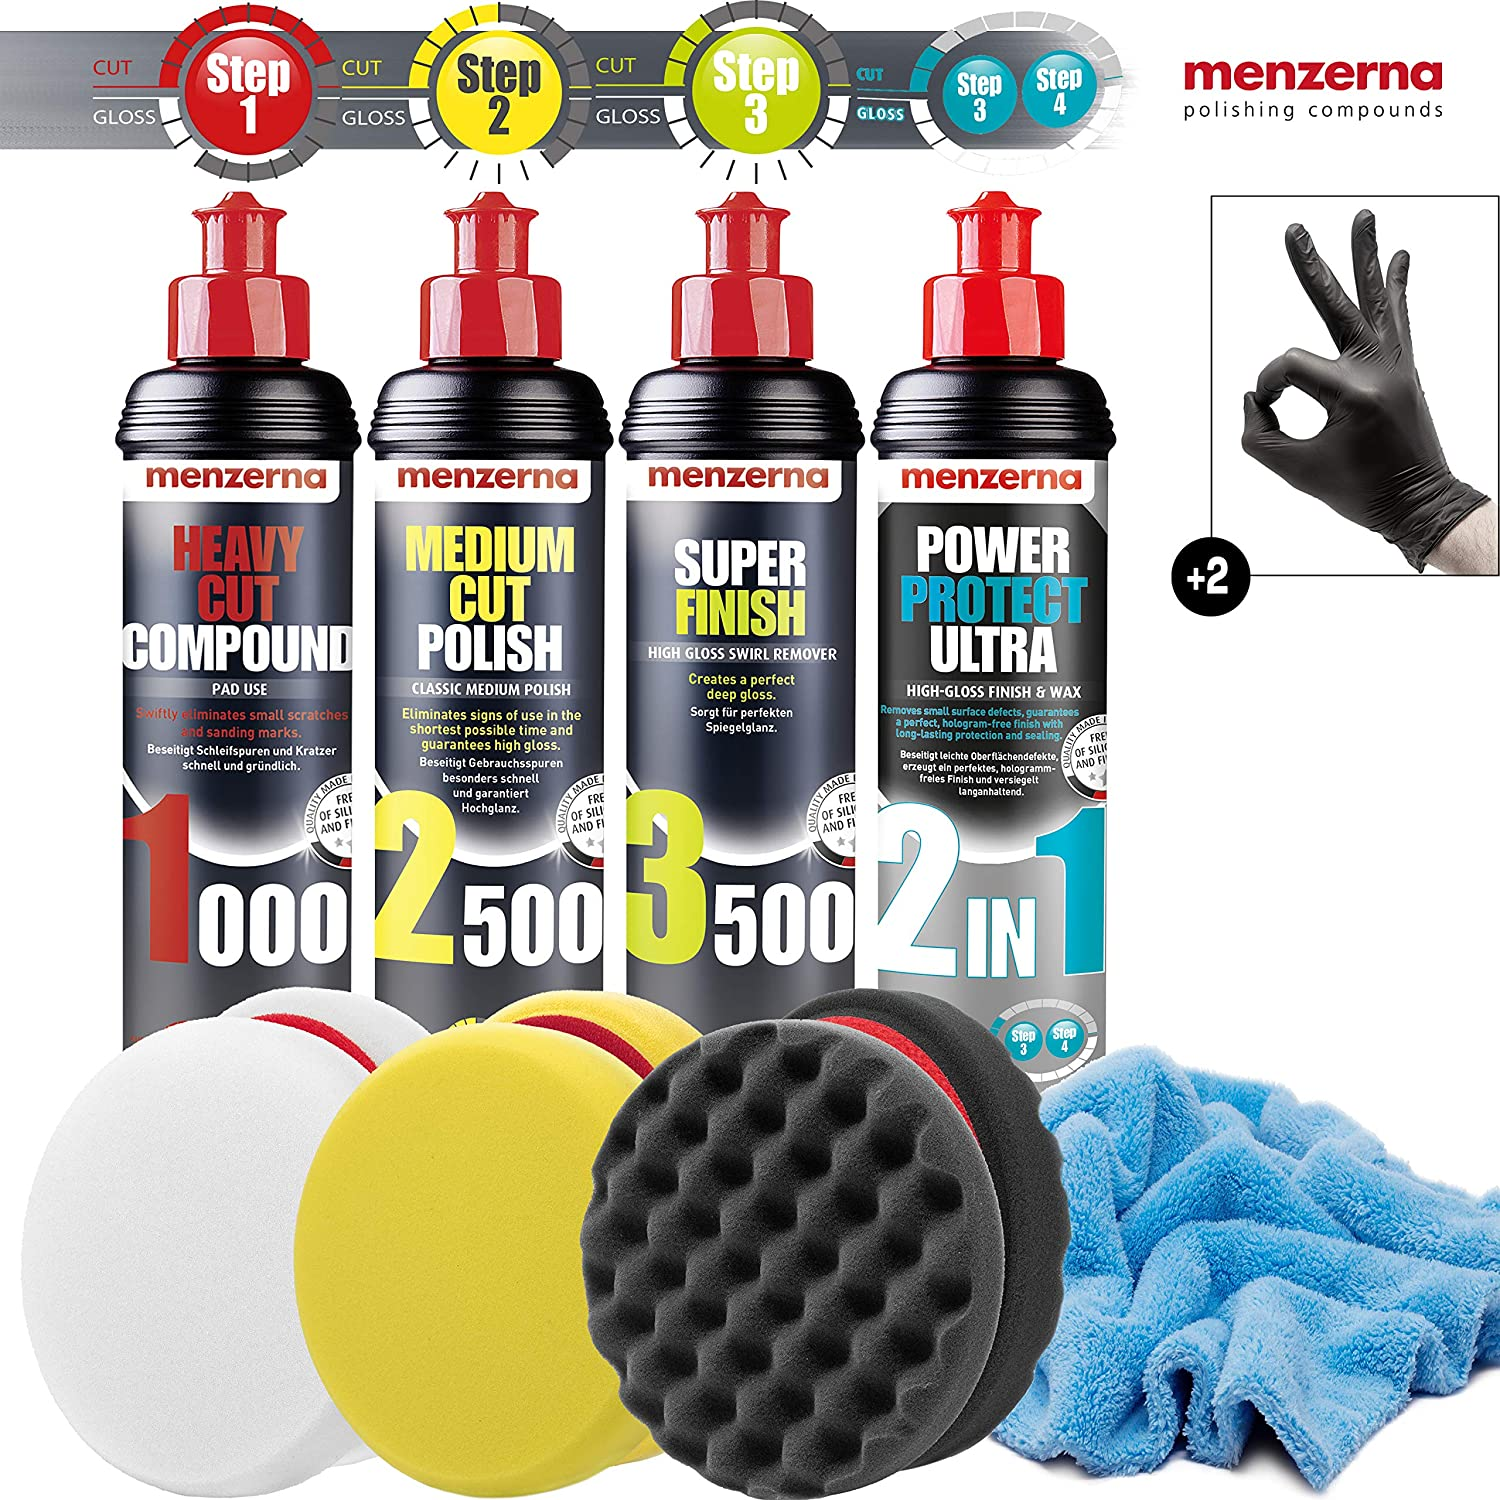 Detailmate Auto Politur Set Menzerna 250ml Autopolitur Super Heavy Cut 1000 Medium Cut 2500 Super Finish 3500 2 In 1 Power Protect Ultra Finish Wax 3x Menzerna Pad Mikrofaser Poliertuch Auto